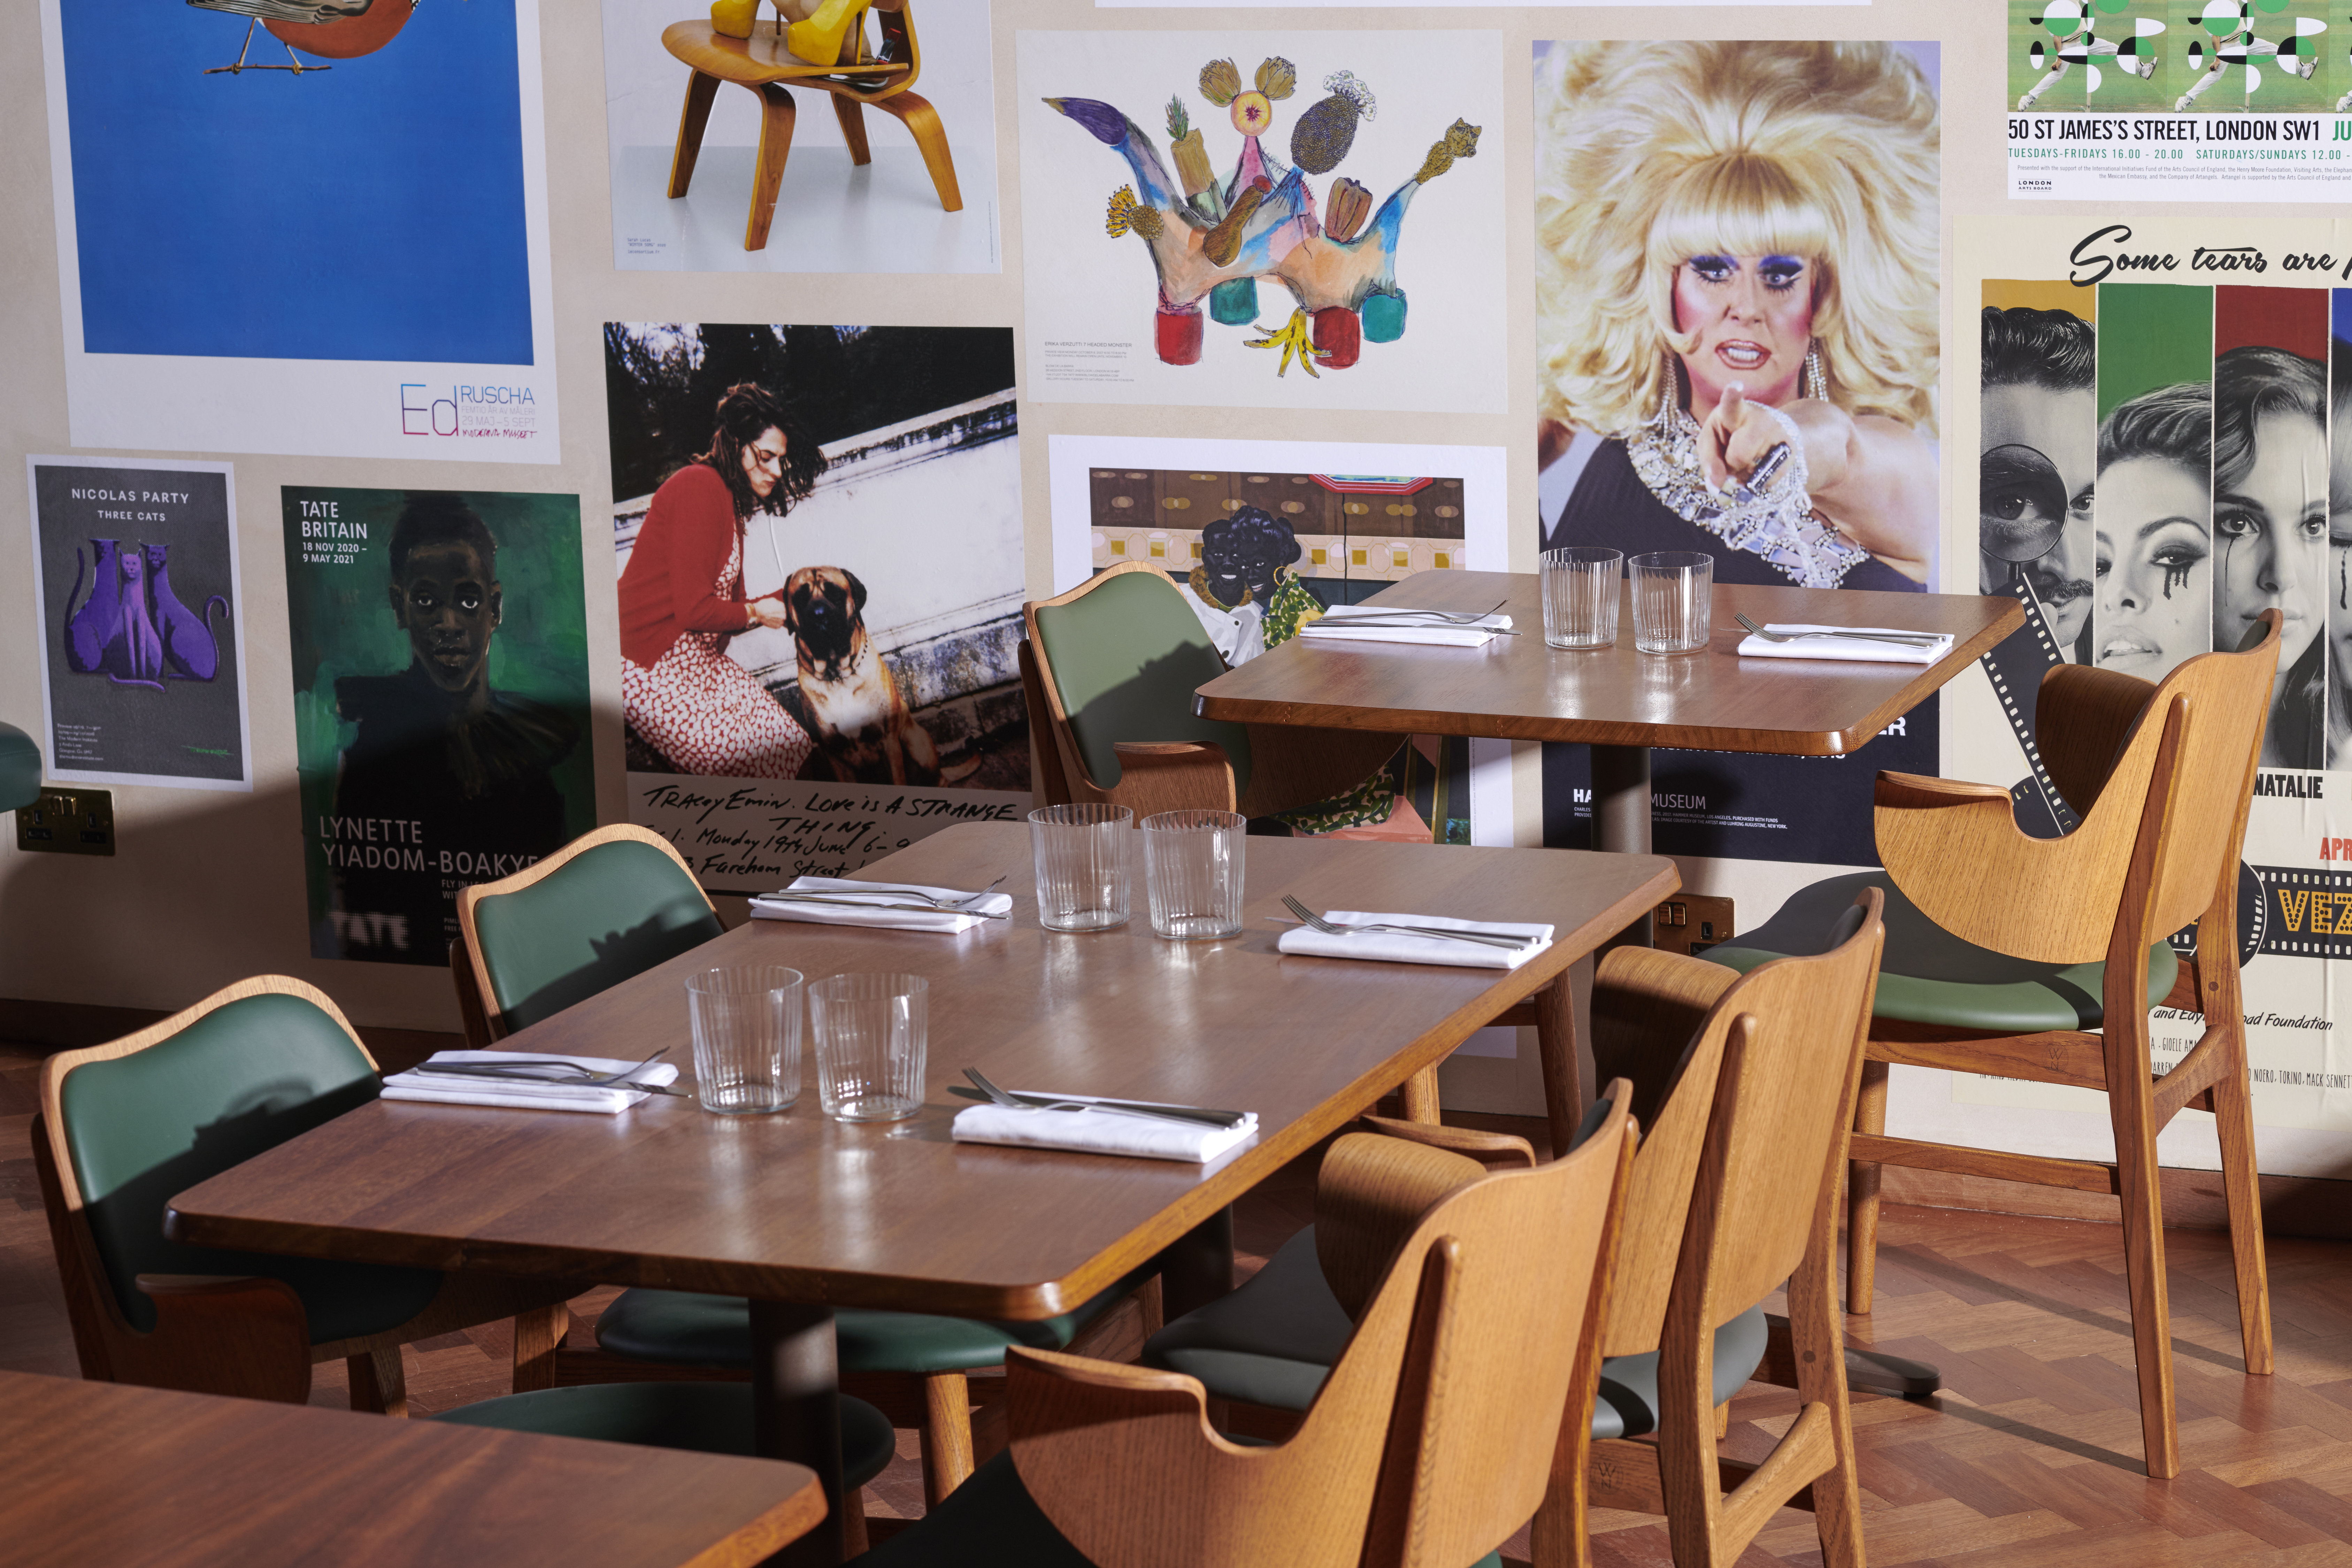 A dining room of mid-century / Bauhaus tables and chairs, with short tumbler glasses and white napkins on each table. The backdrop is a selection of art posters, creating a collage effect on the wall.